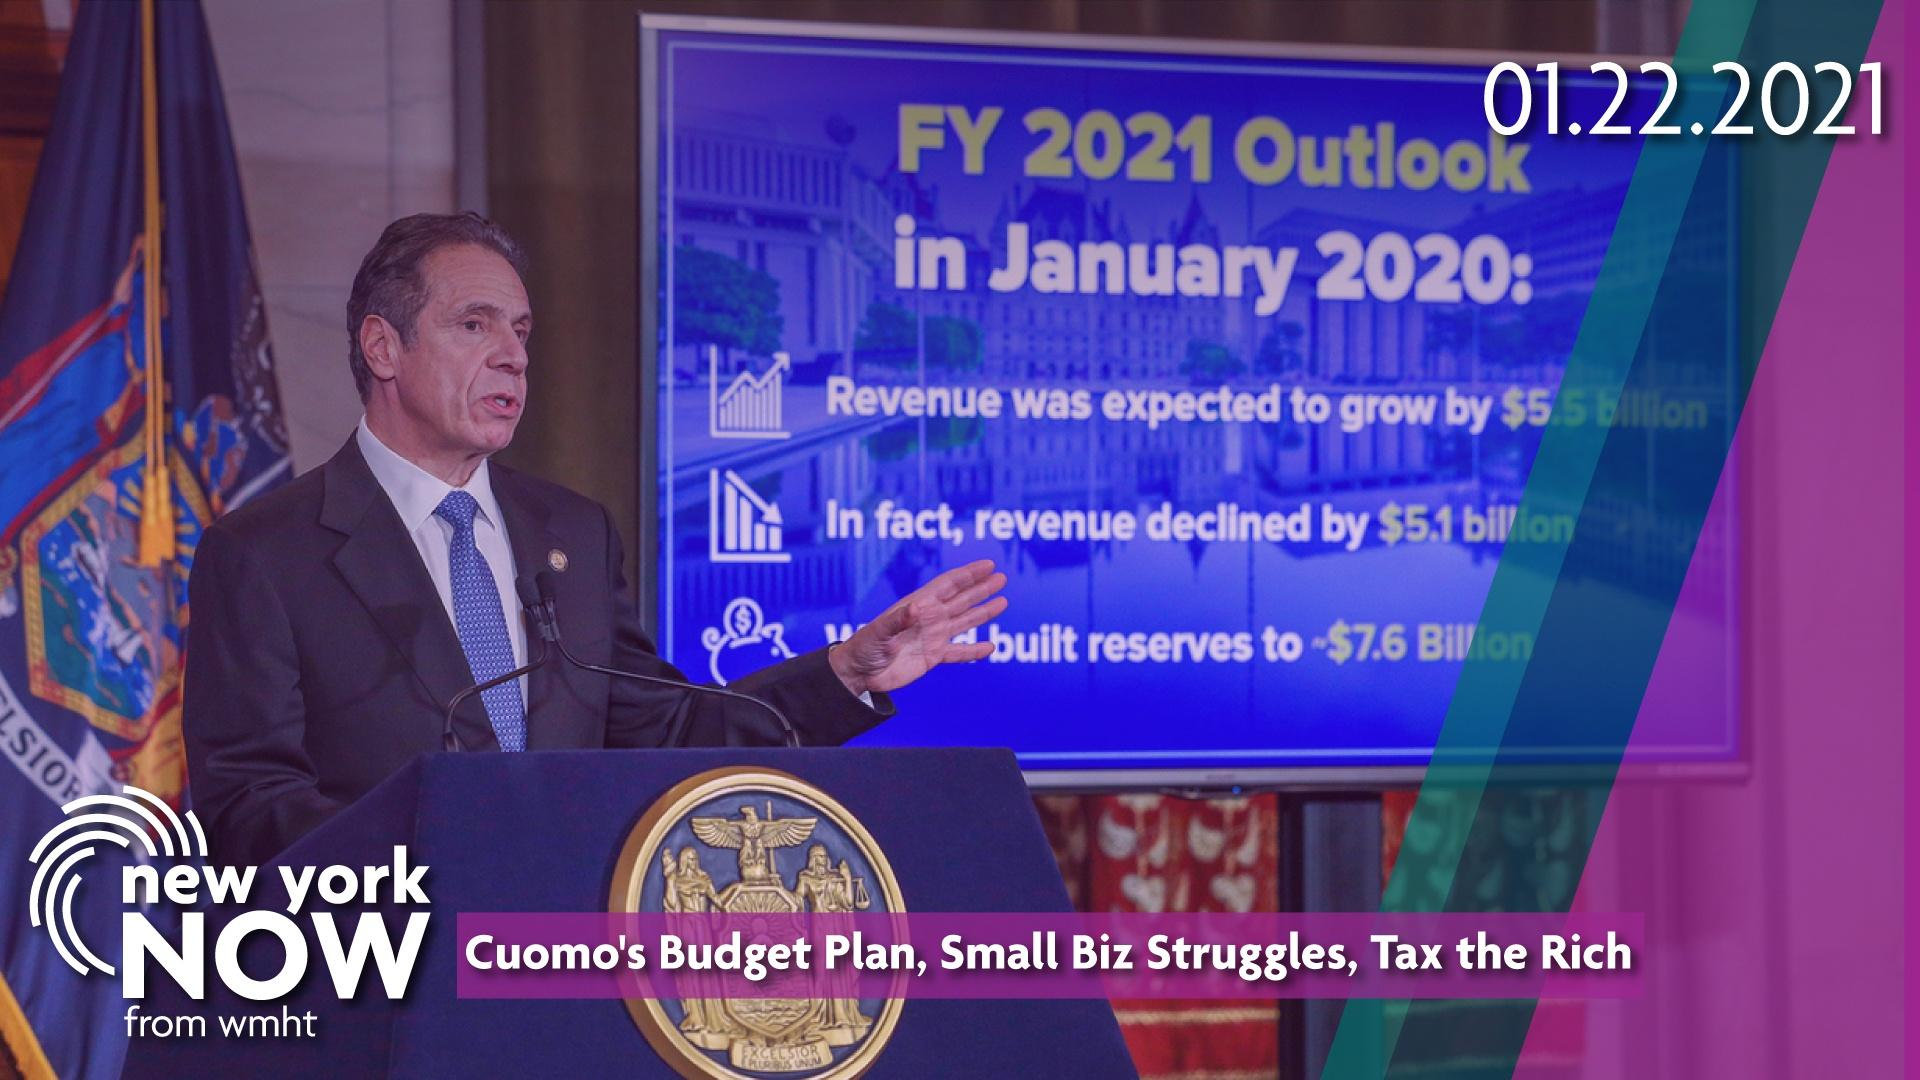 Governor Andrew Cuomo delivers his 2021 New York State Budget Address.